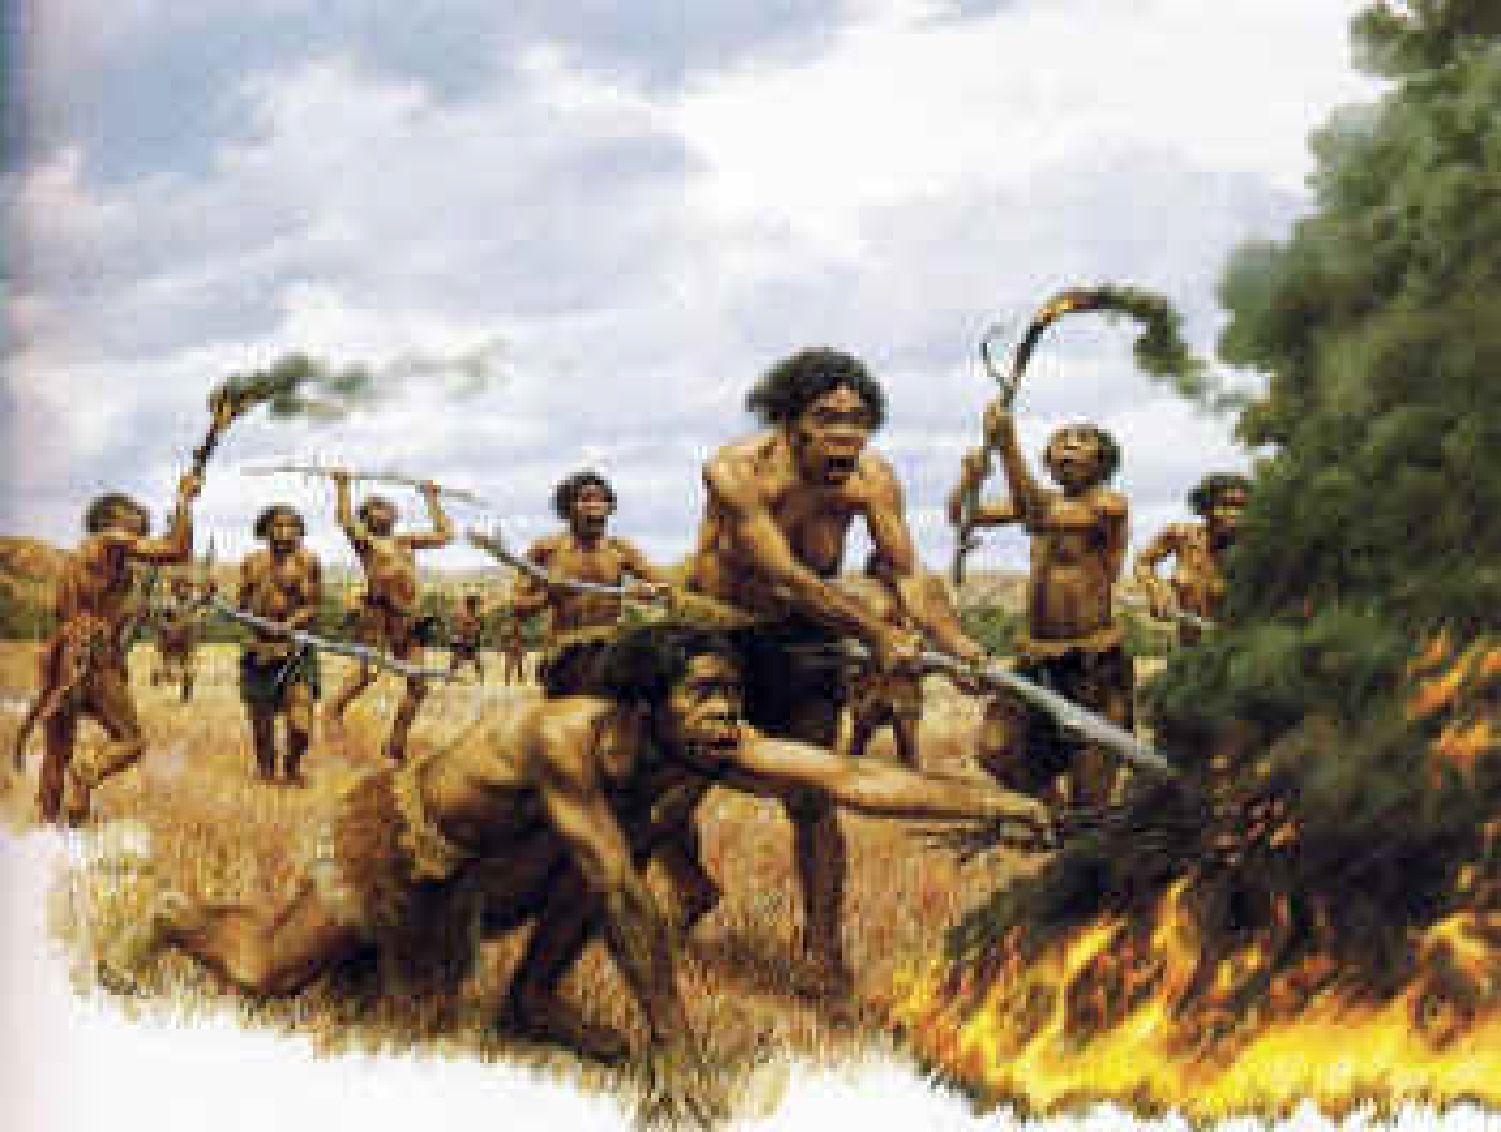 prehistoric culture culture in the stone age A brief history of denmark denmark in prehistoric times the stone age the earliest evidence of human habitation in denmark occurs in the eem interglacial period in jutland, the gudenå culture, and on sjælland [zealand], the maglemose and kongemose cultures.